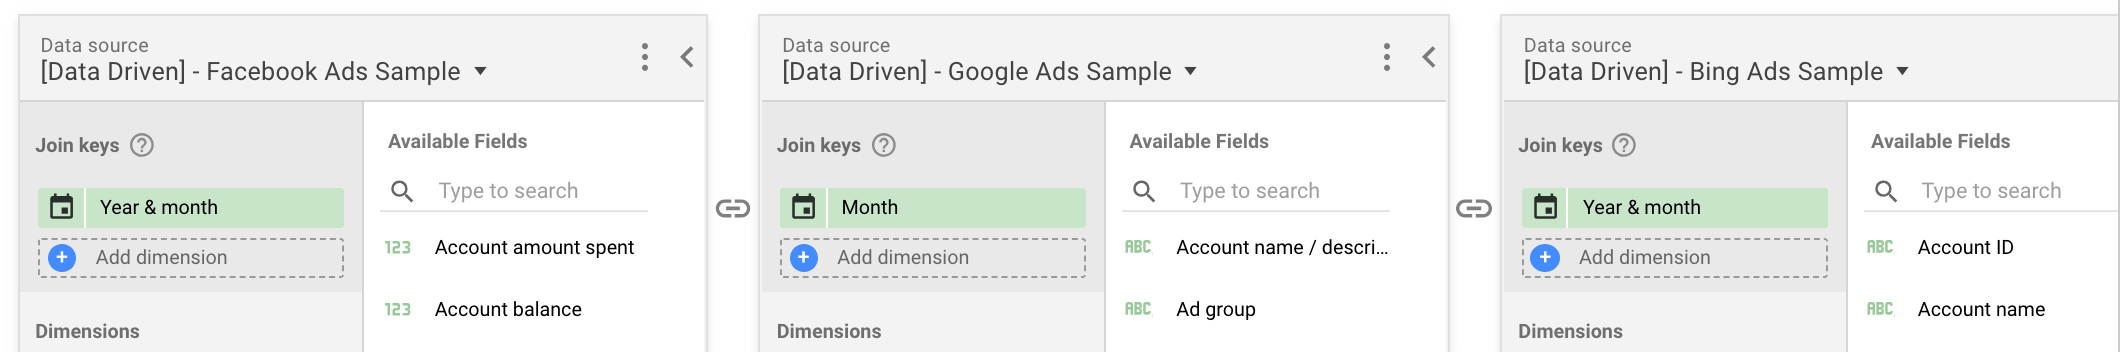 Blending PPC Data in Google Data Studio